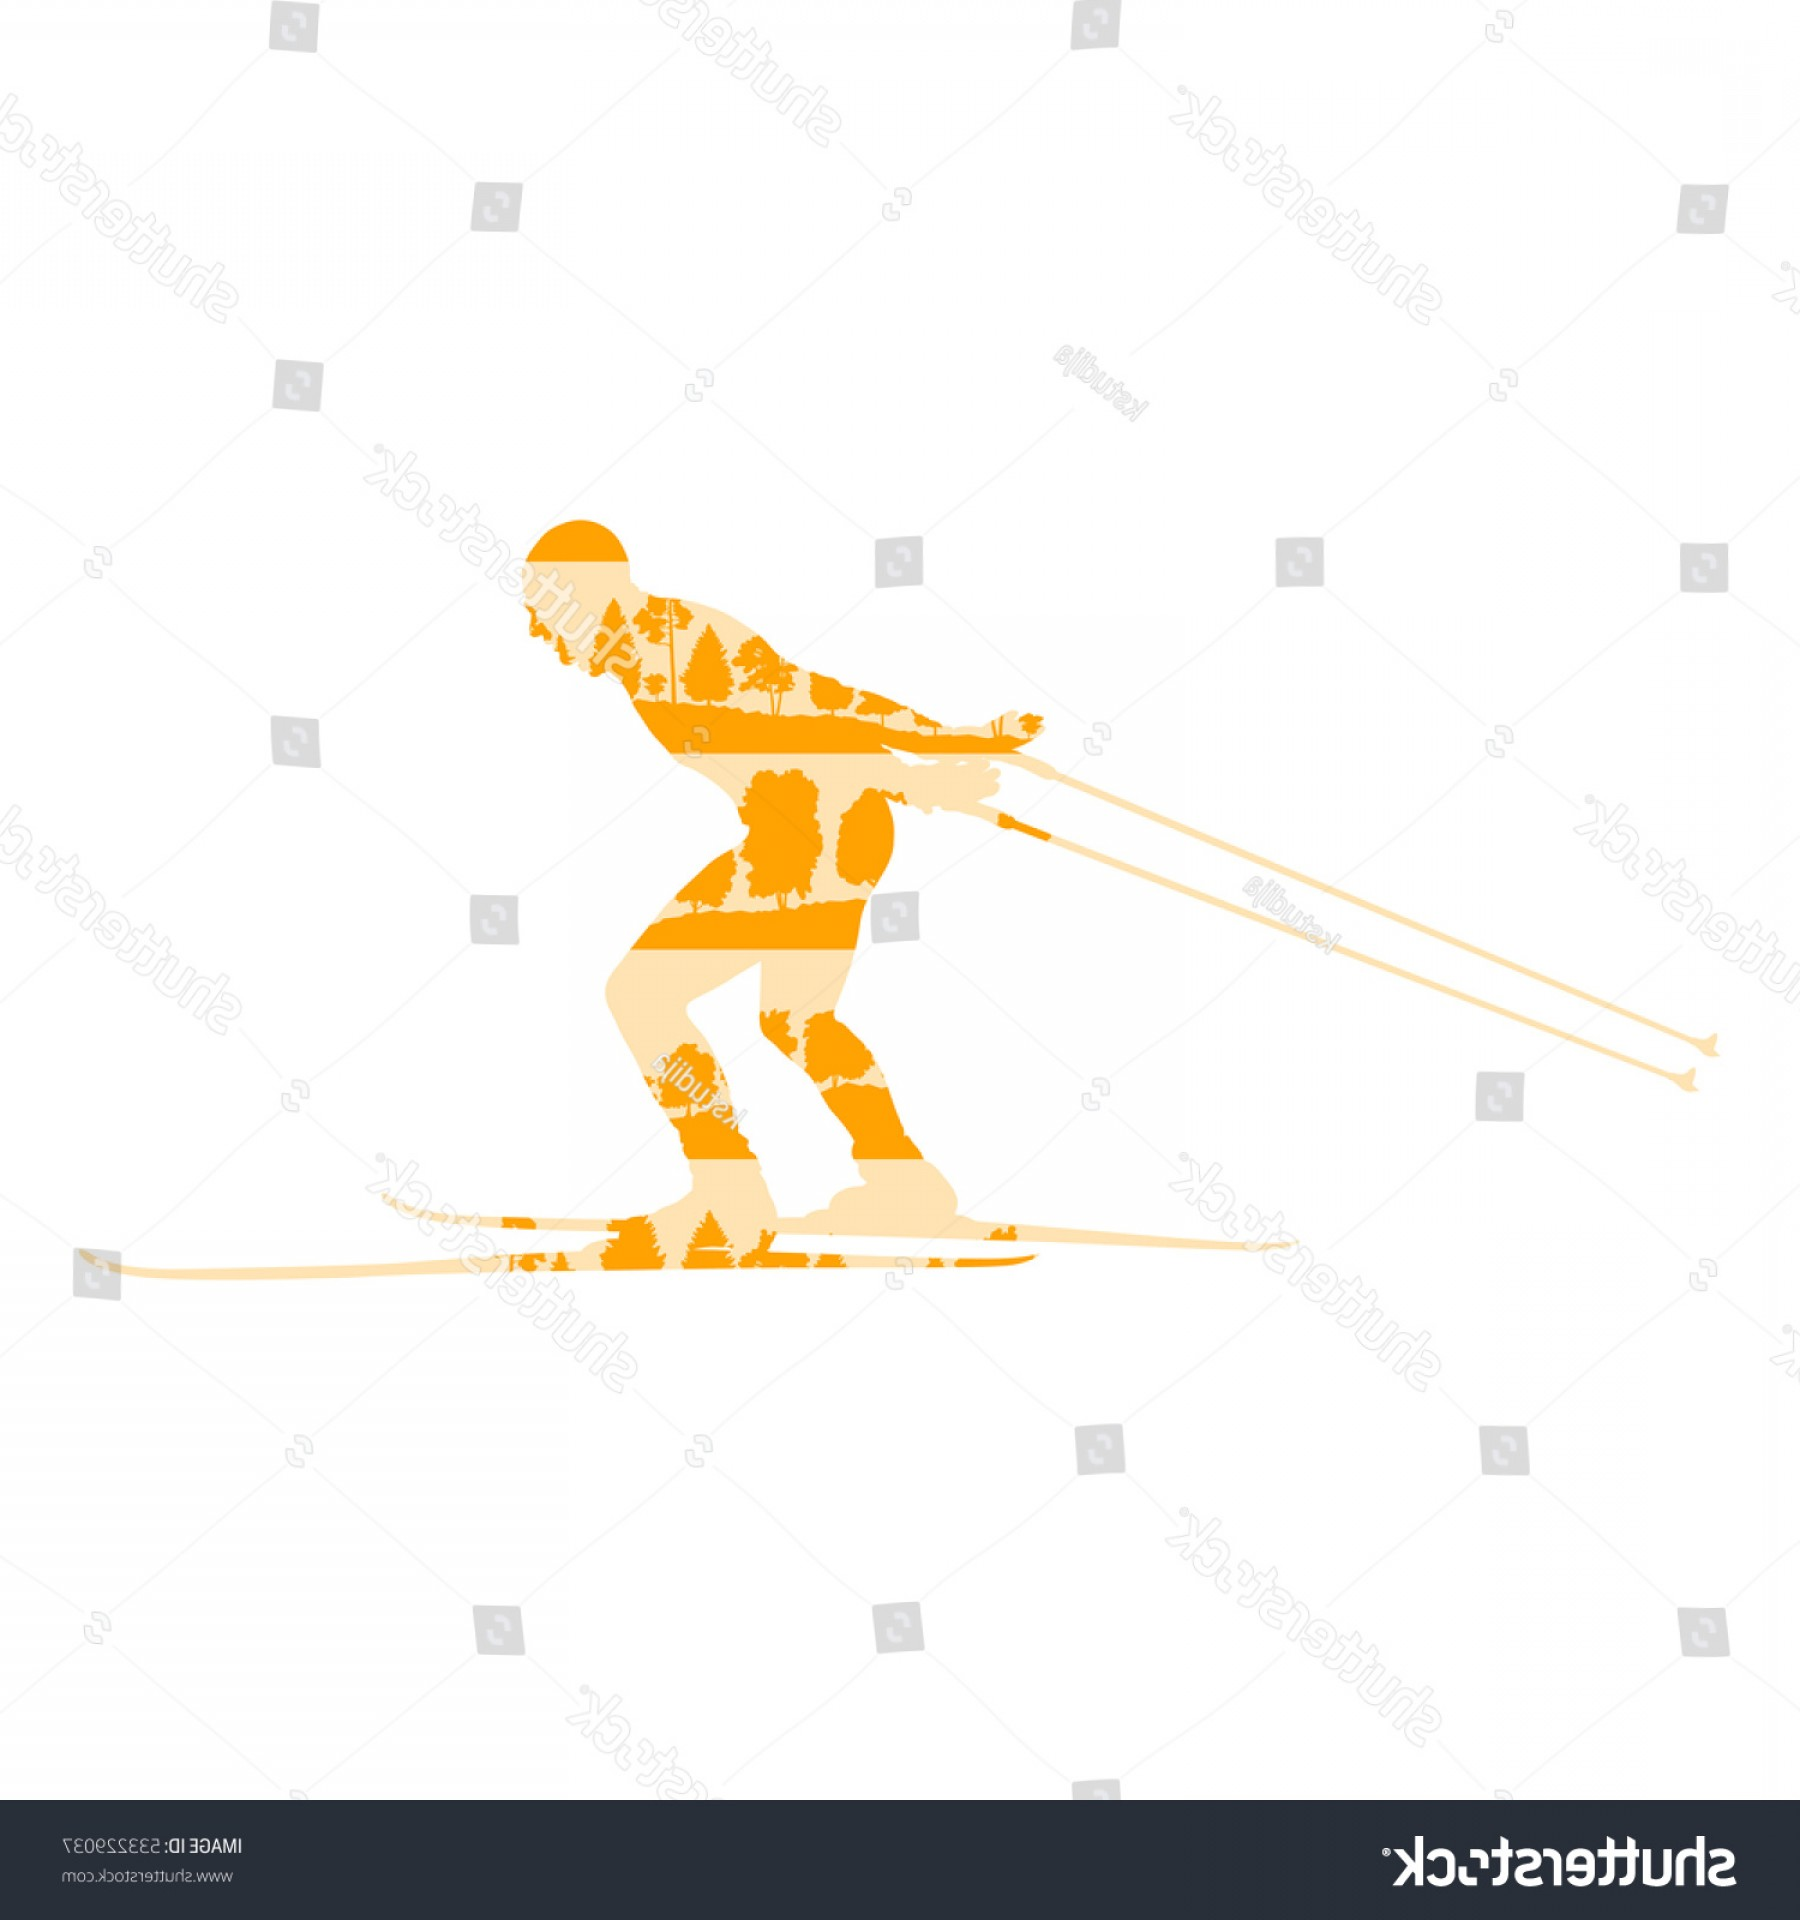 Transparent PNG Vector Skier: Cross Country Skiing Man Vector Background